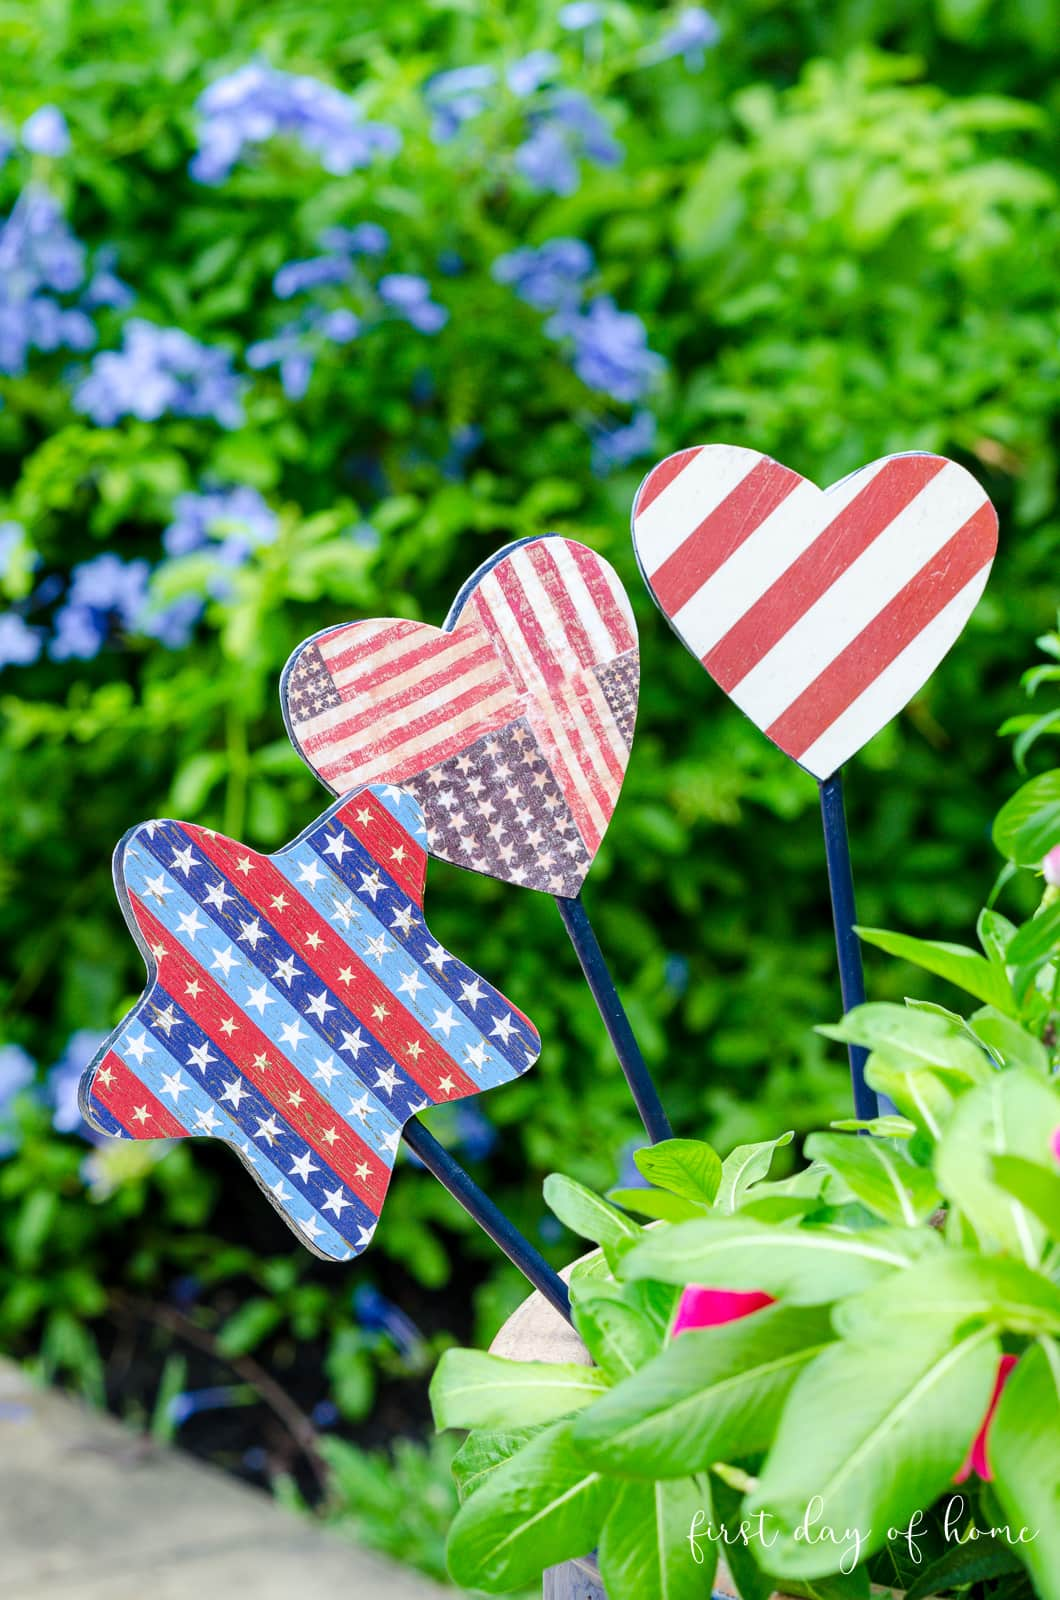 Trio of garden stakes with Americana patriotic theme sitting in flower pot - DIY tutorial